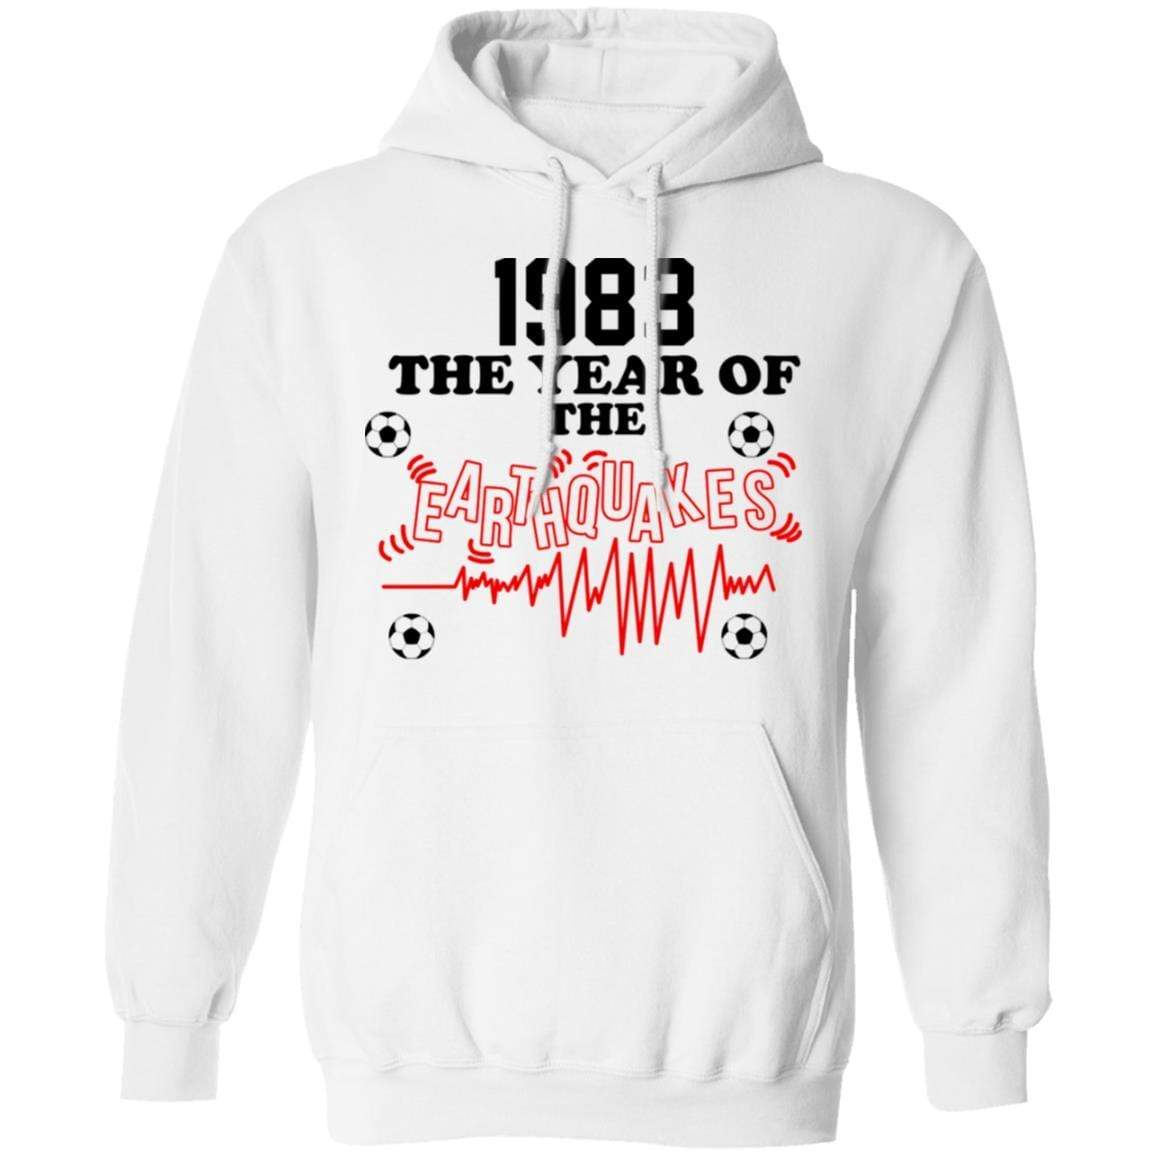 1983 The Year Of The Earthquakes San Jose Earthquakes T-Shirts, Hoodies 541-4744-86355408-23183 - Tee Ript